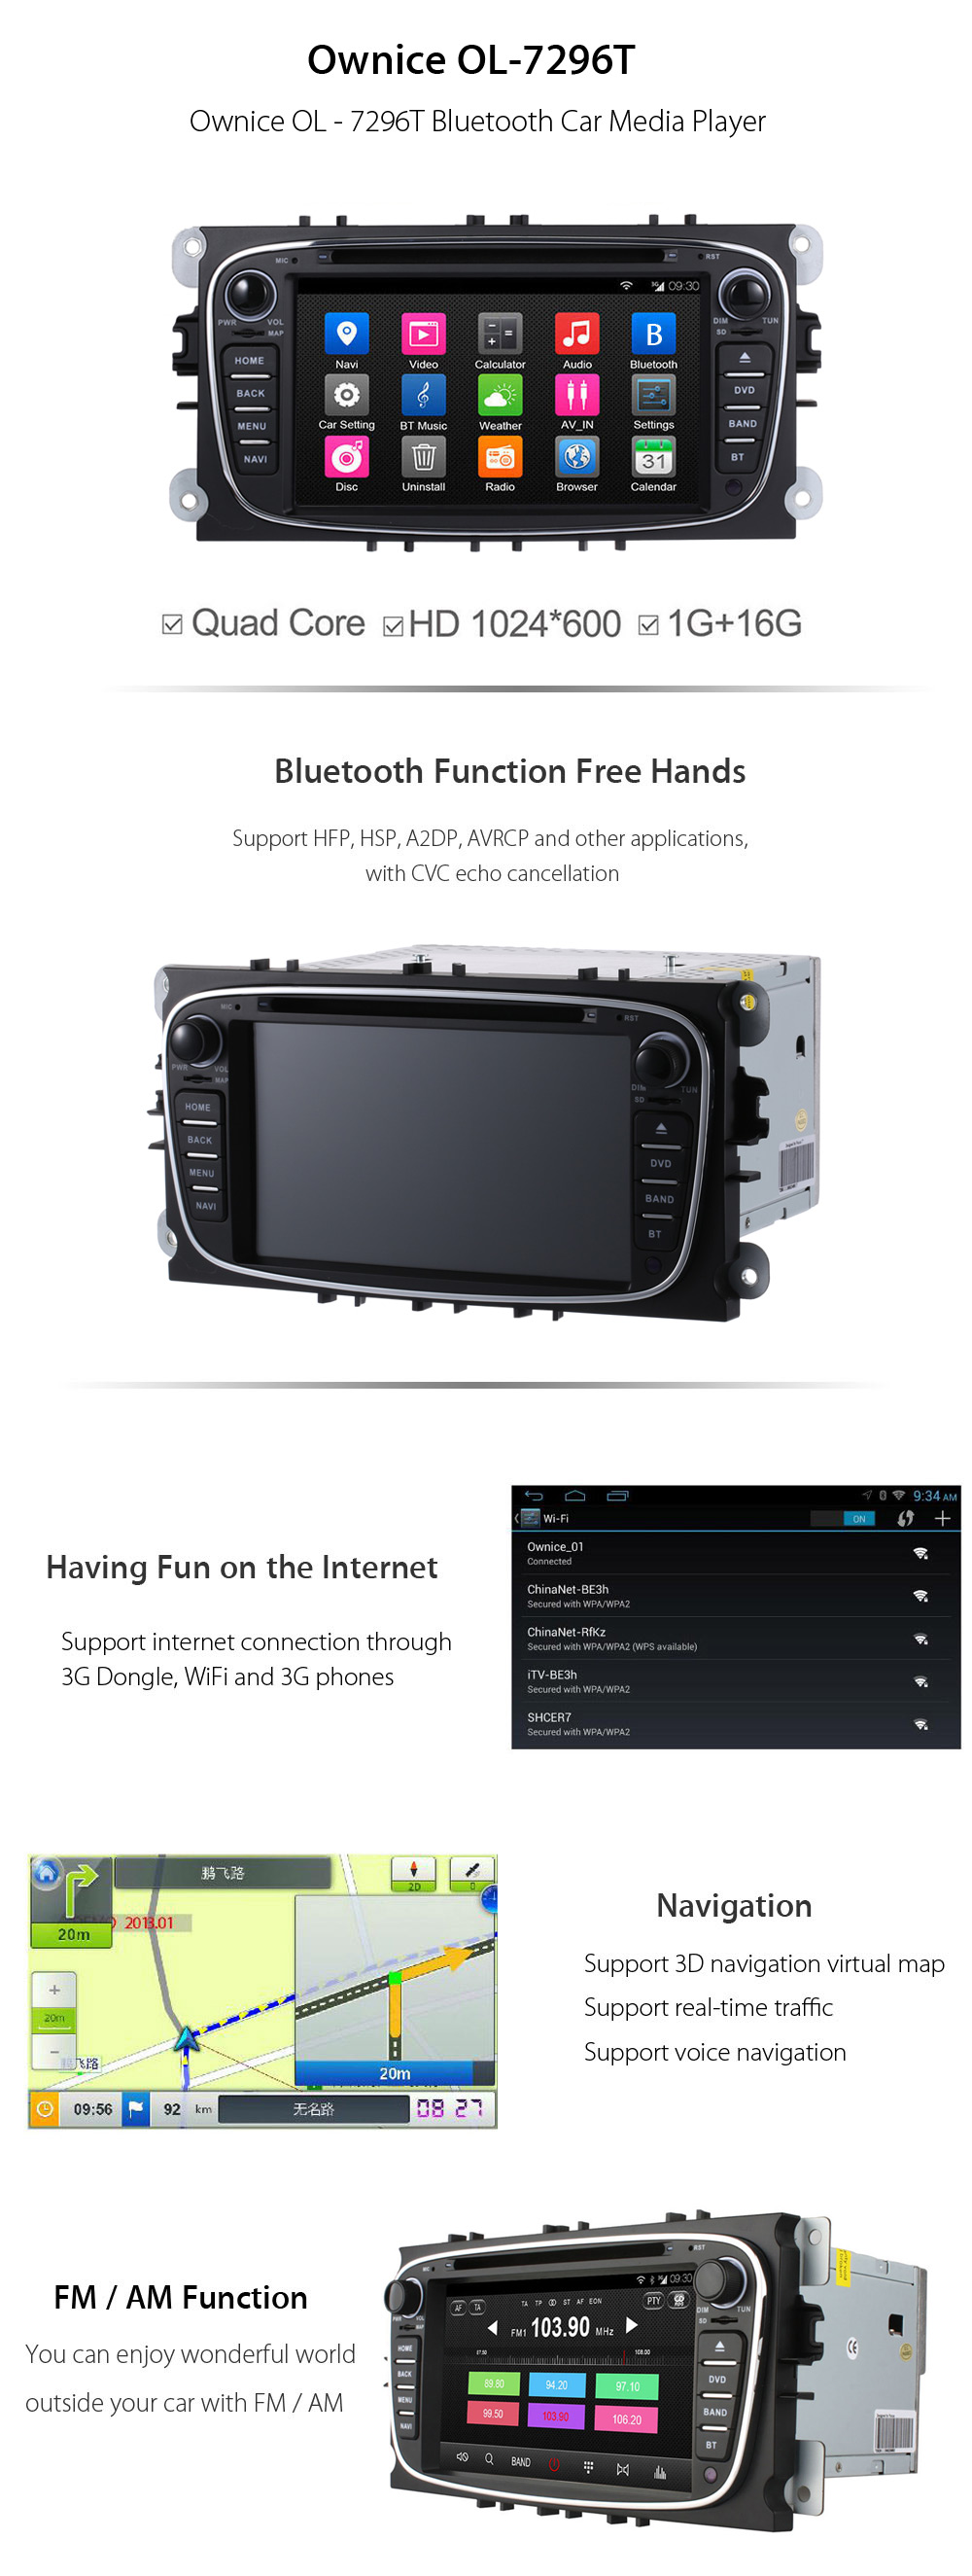 Ownice OL - 7296T 7.0 inch Bluetooth Quad Core Android 4.4 Car DVD Player Support Navigation WiFi FM